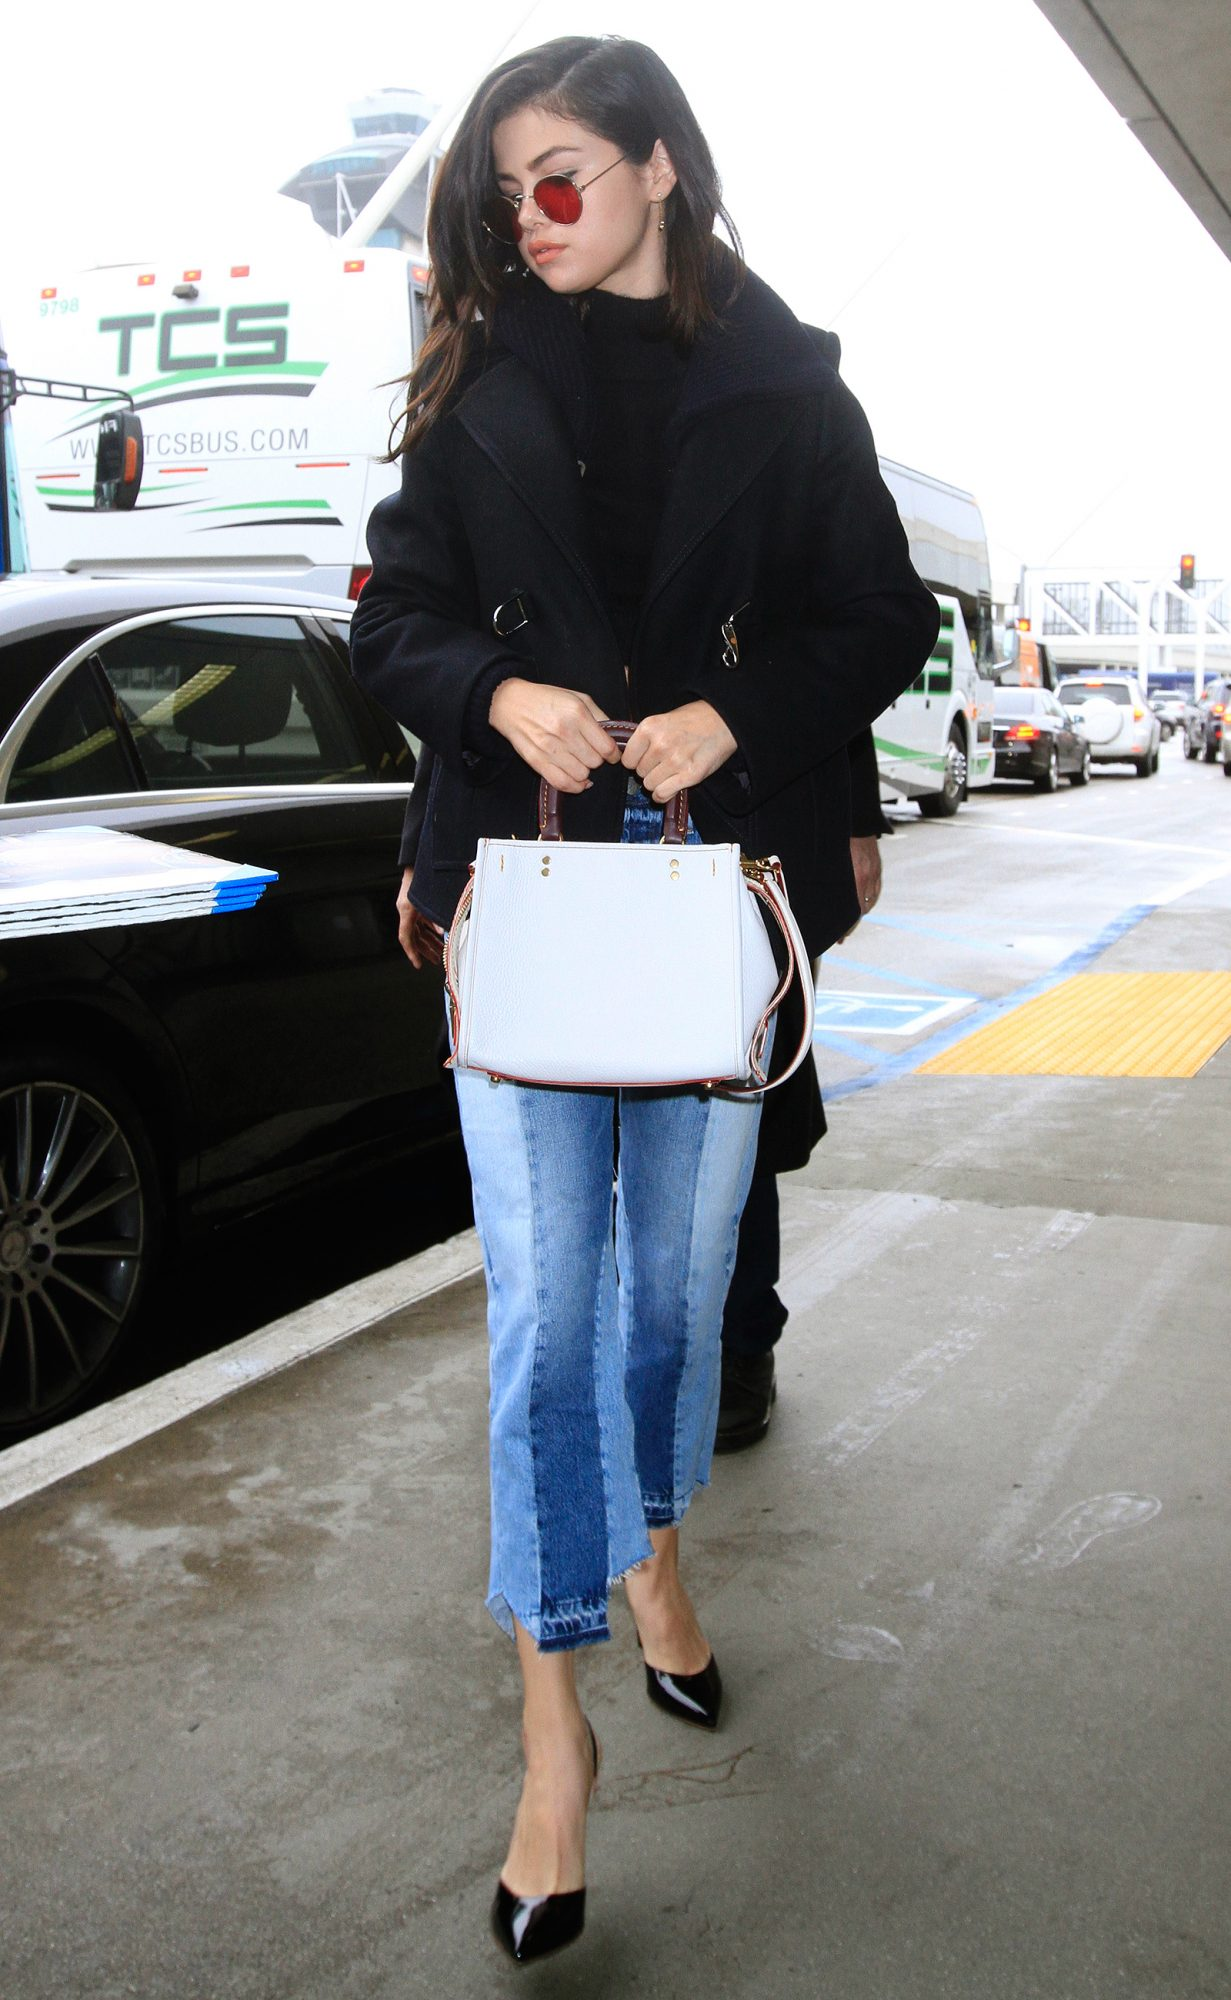 Selena Gomez shows off her toned stomach in a black midriff turtleneck sweater, two-toned blue jeans, black pumps and a long coat with round sunglasses.